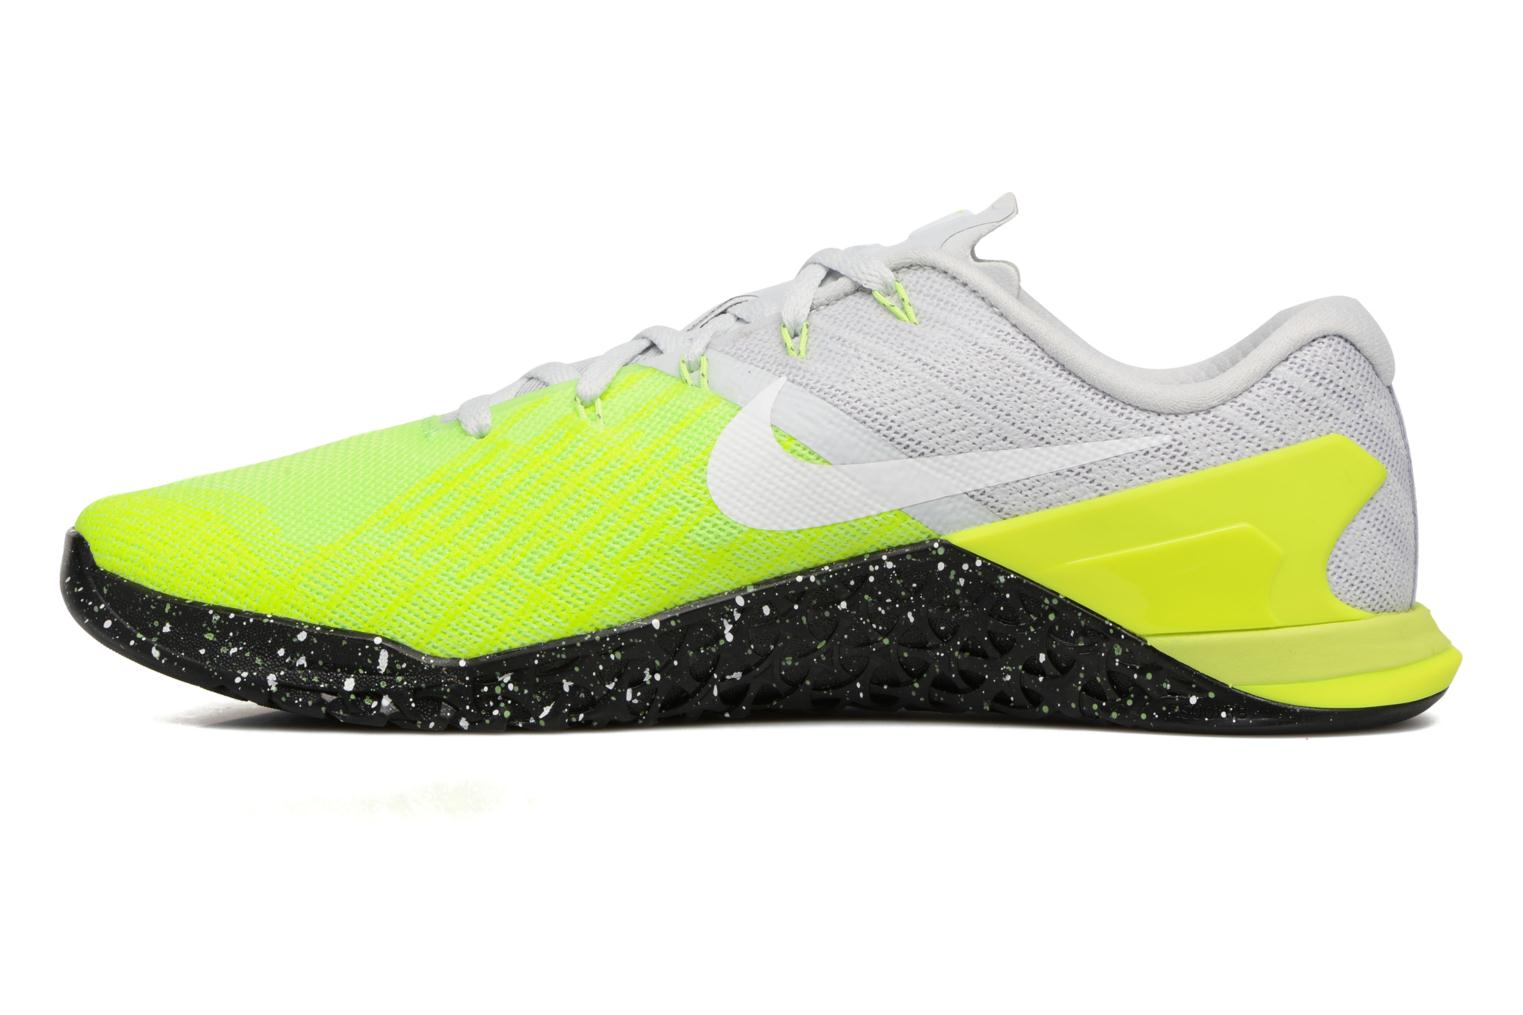 Nike Metcon 3 PURE PLATINUM/BLACK-VOLT-GHOST GREEN